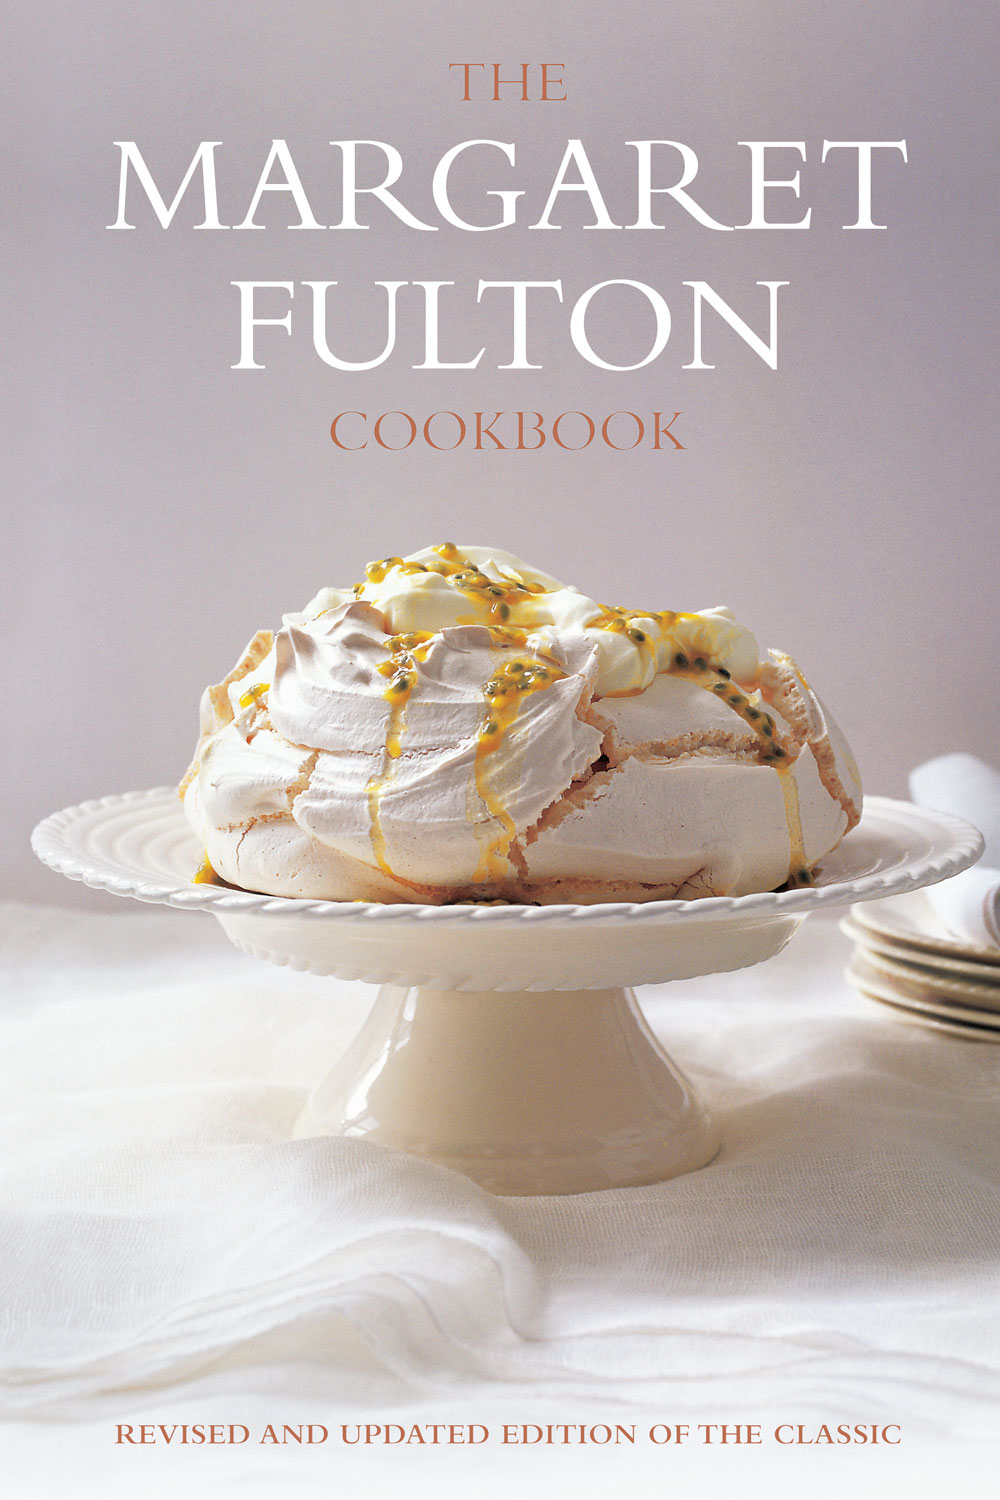 Margaret Fulton Cookbook, The